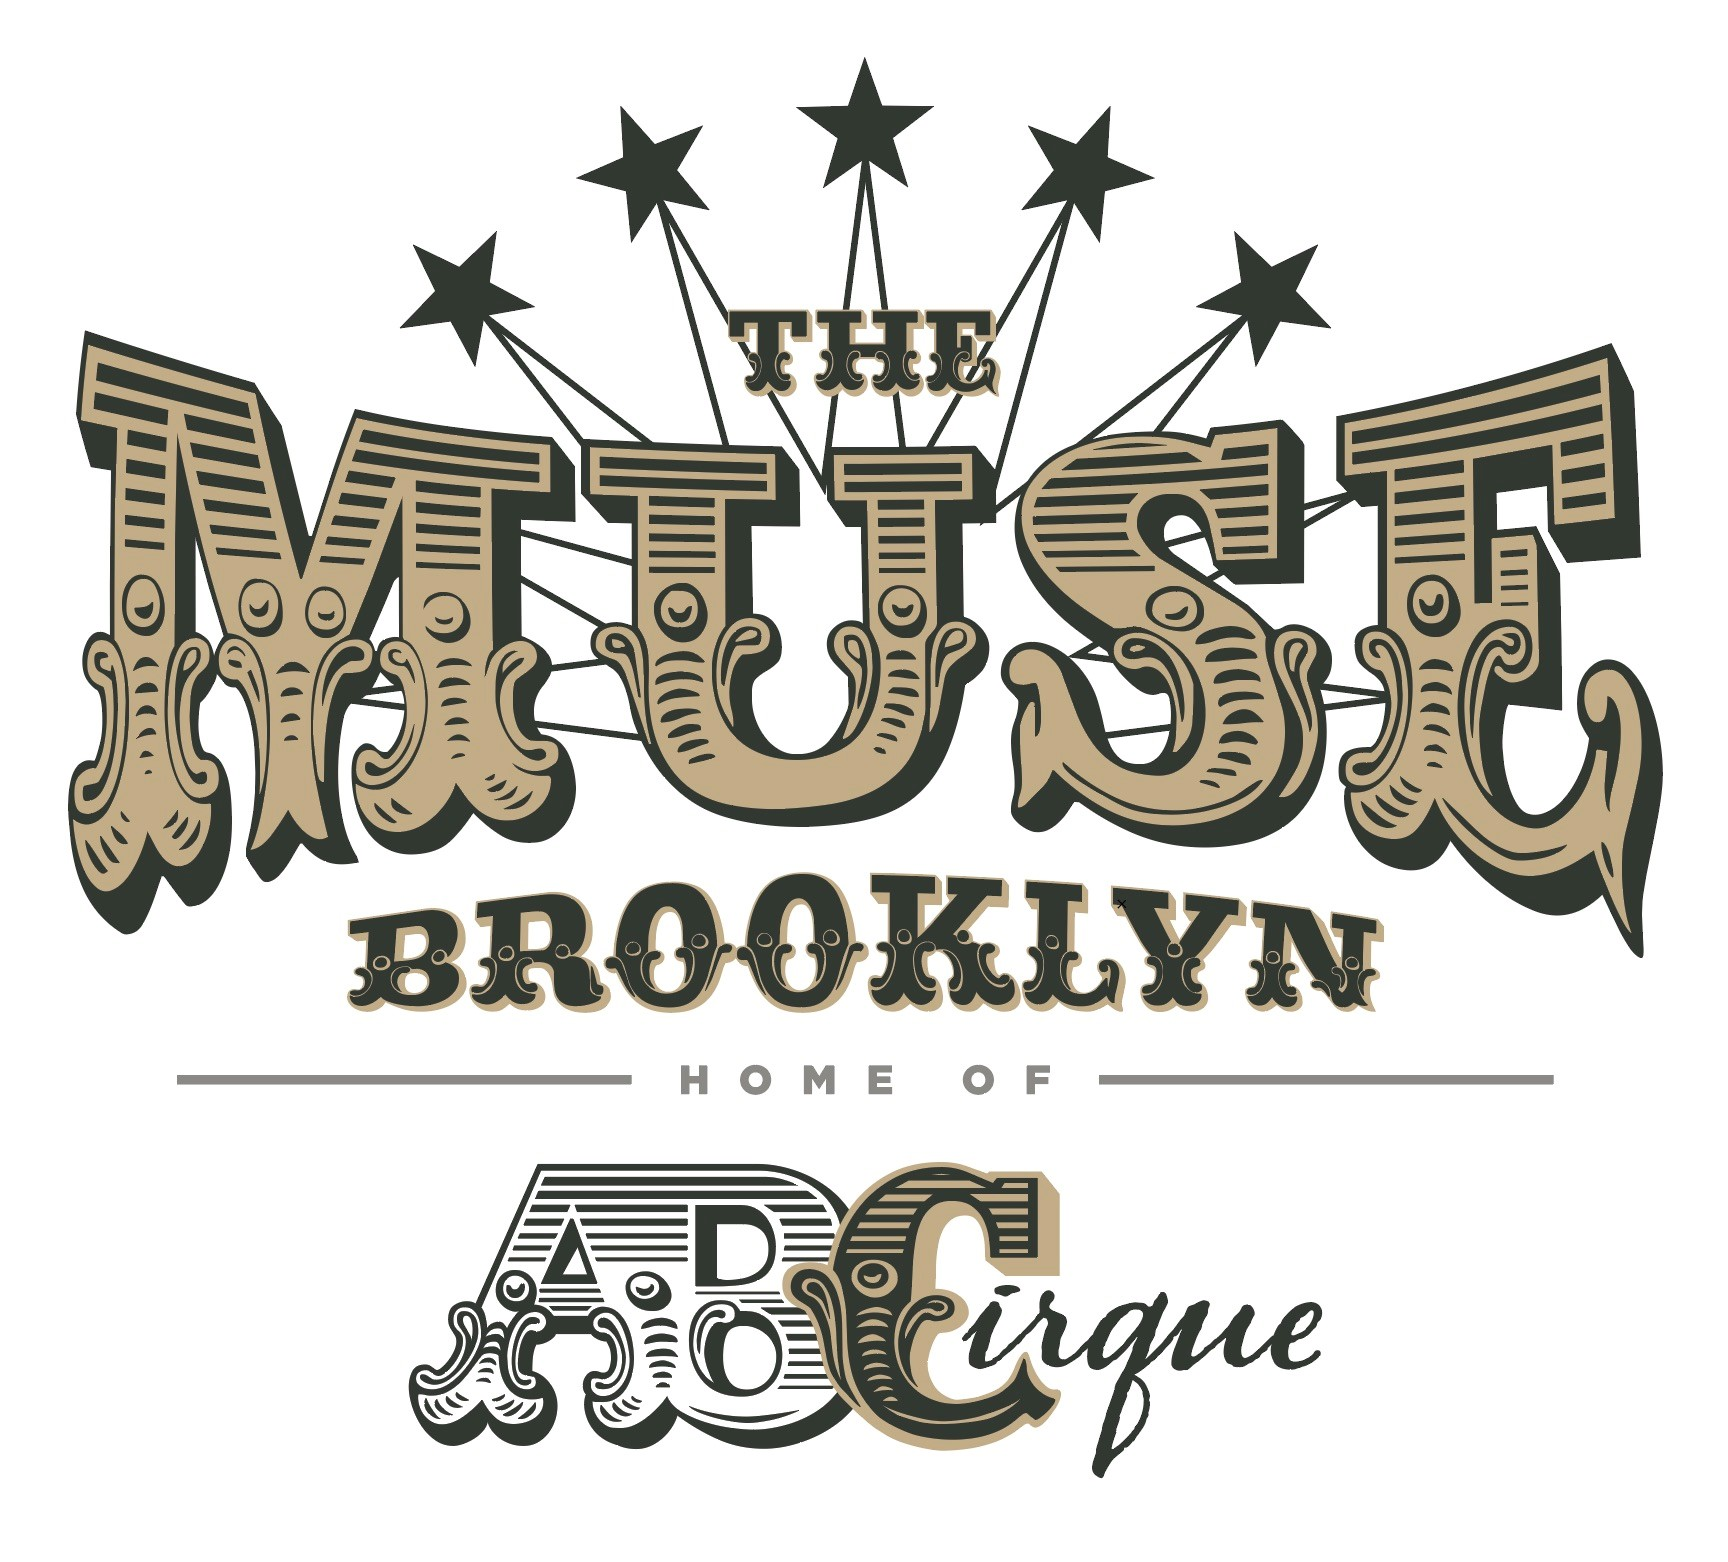 The Muse Brooklyn, home of ABCirque